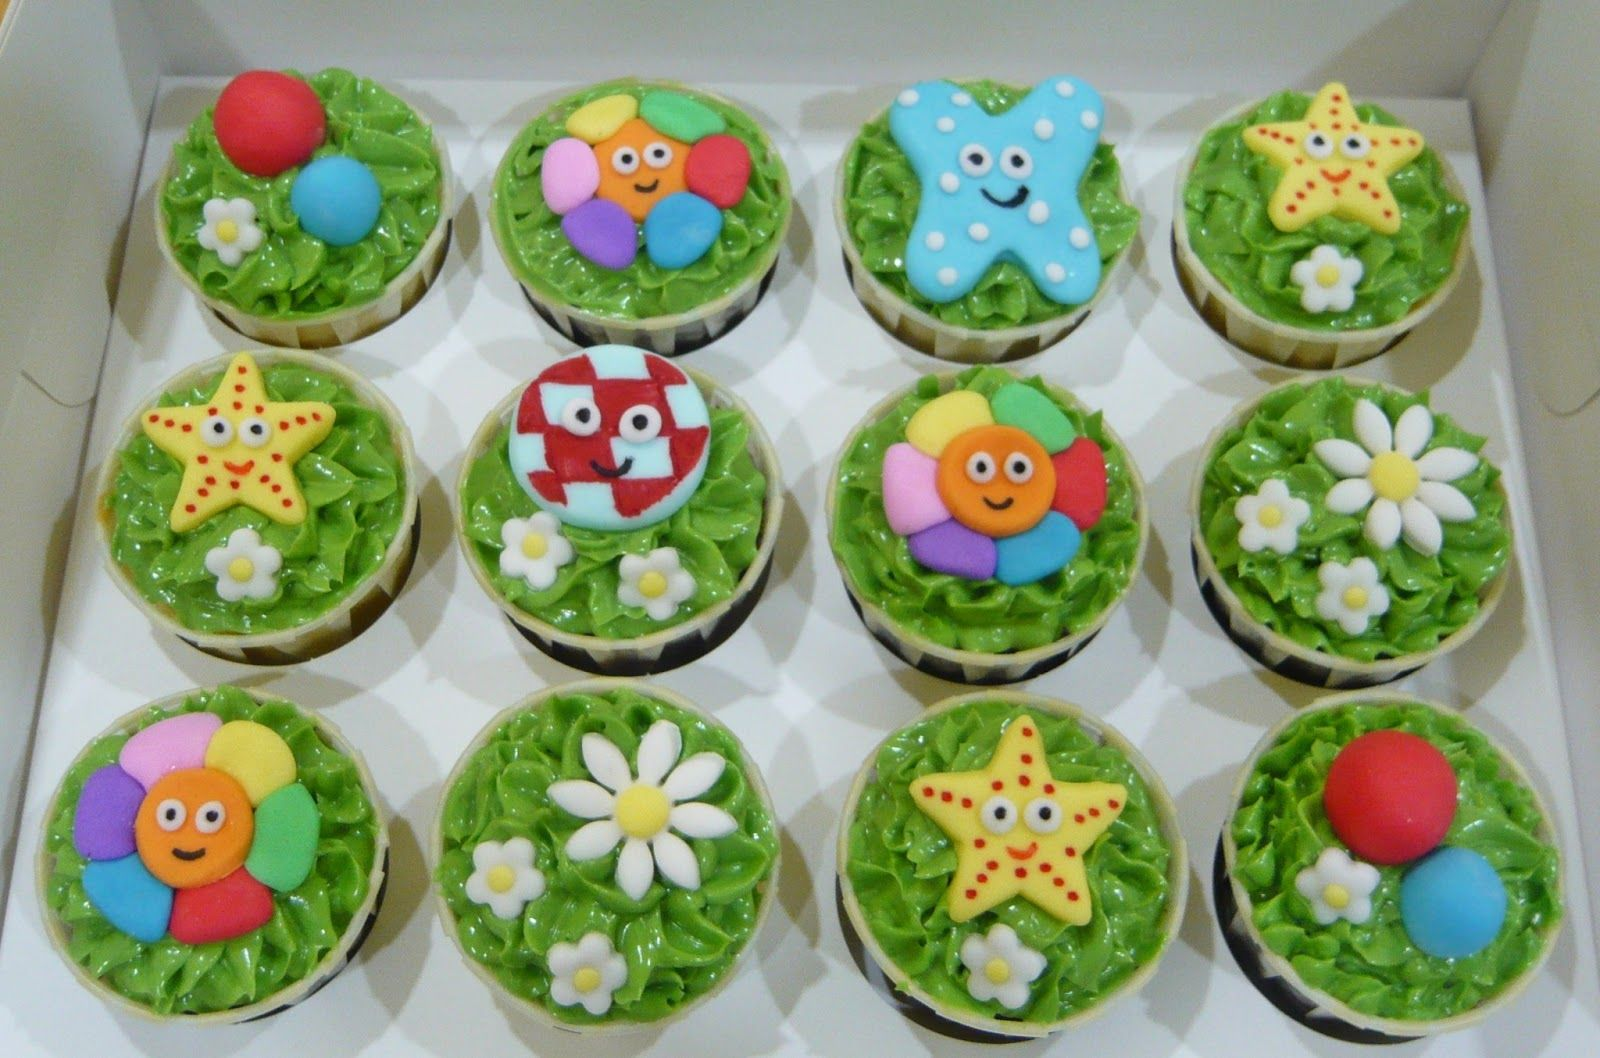 2d in the night garden cake - Google Search | Zenande | Pinterest ...